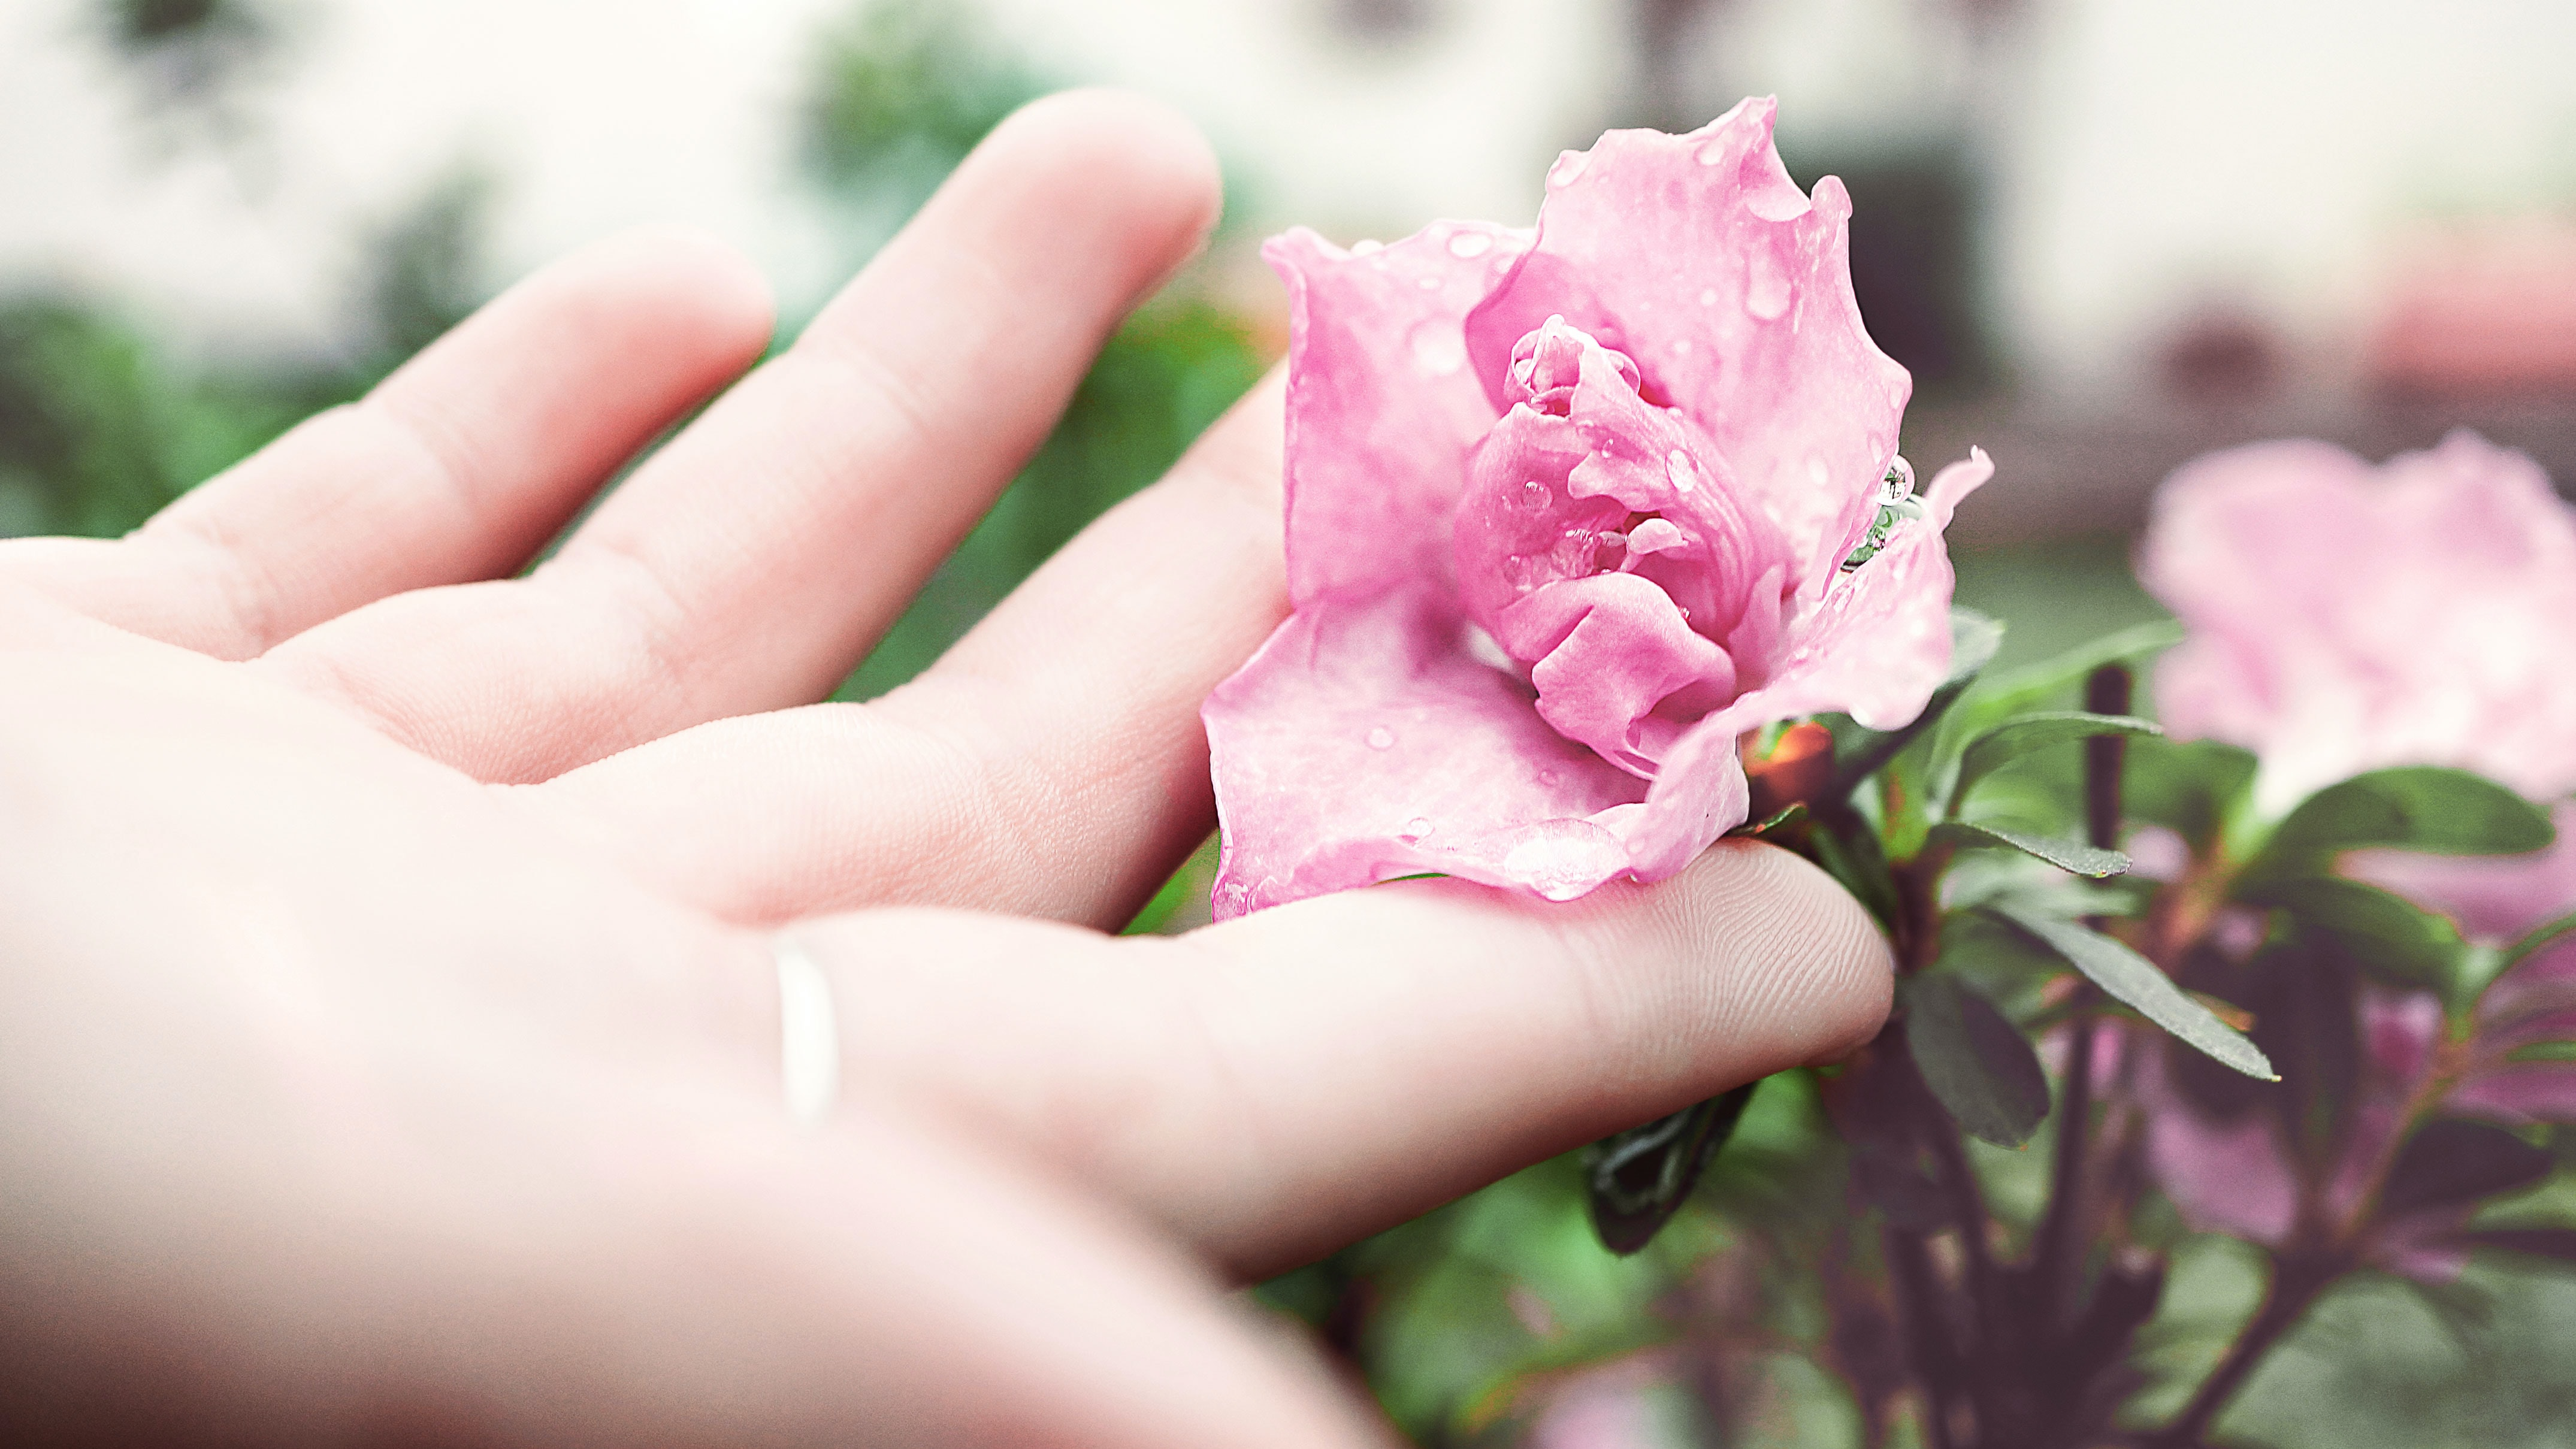 A person's hand gently touching a pink flower